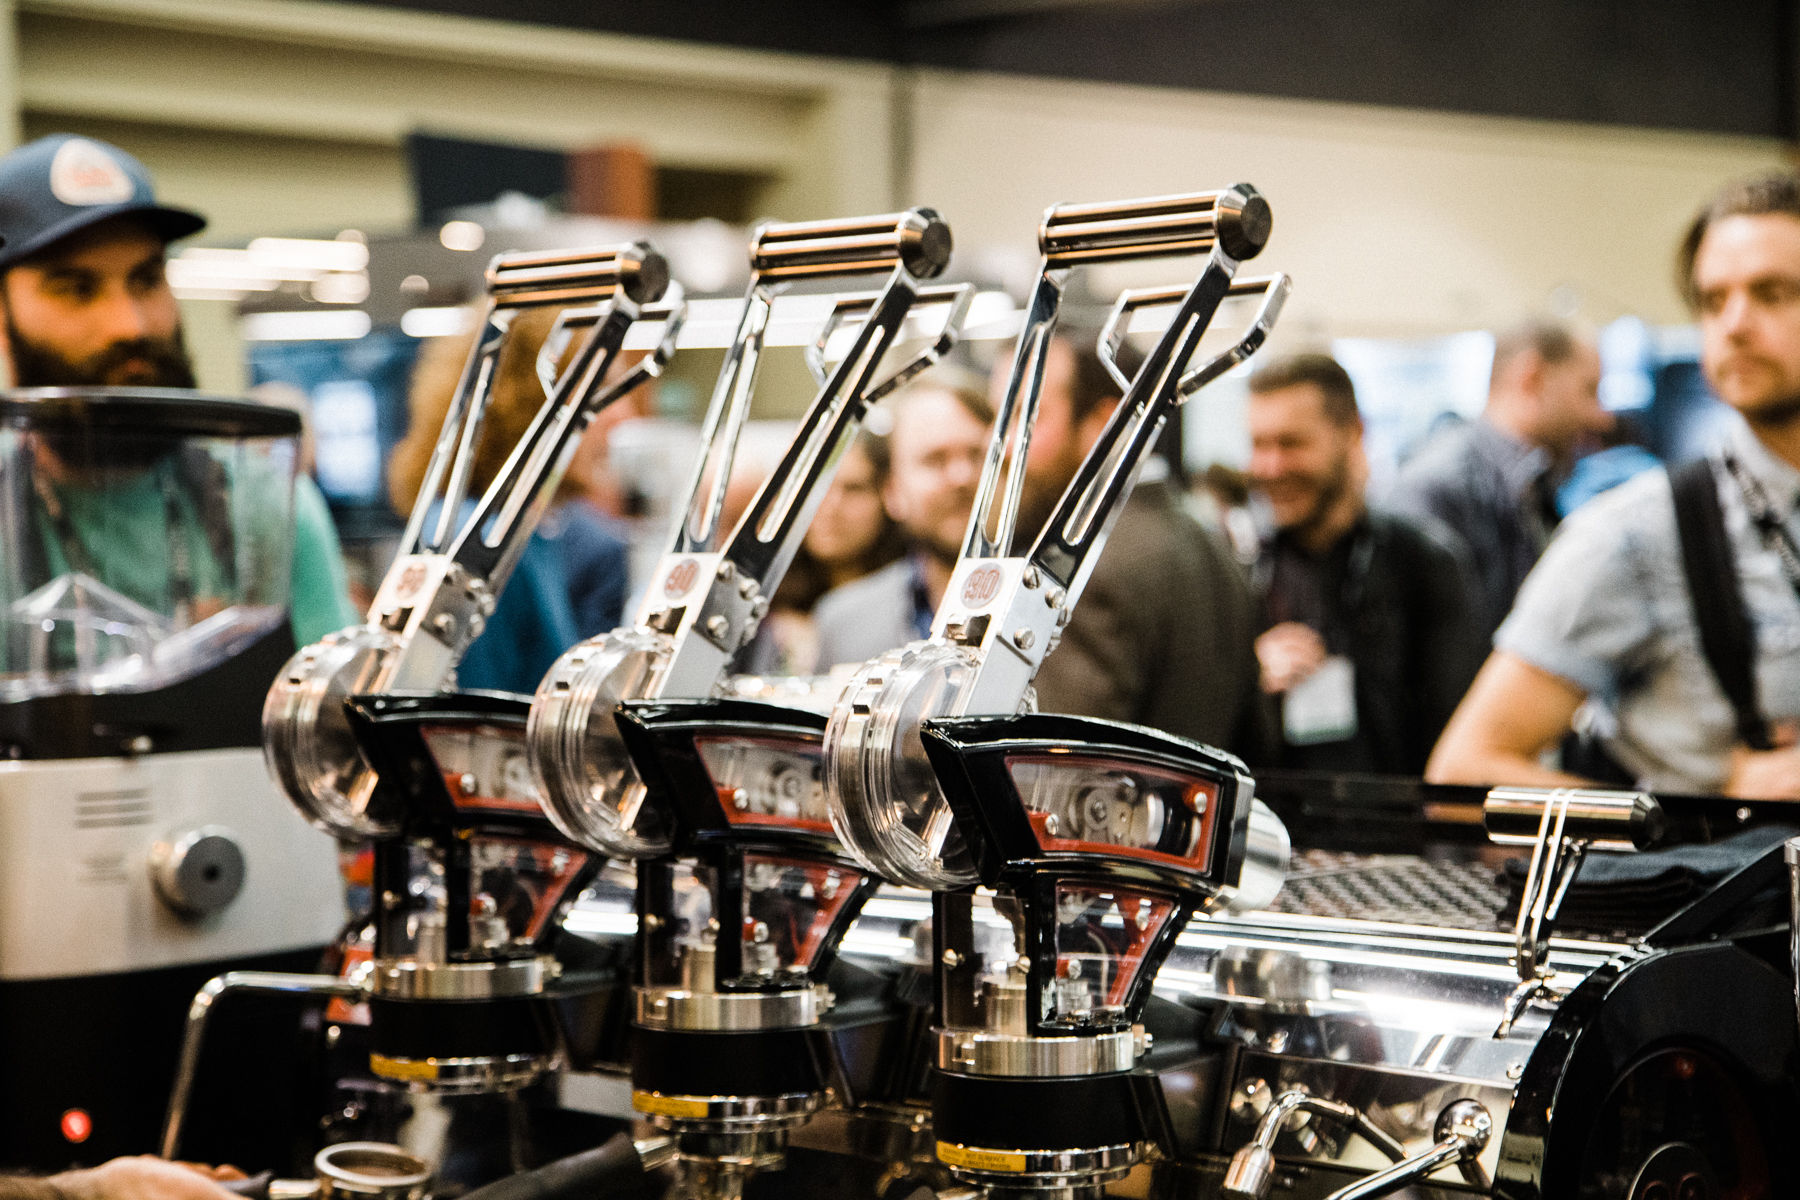 Close up of the levers on the La Marzocco Leva at the 2018 Coffee Expo.